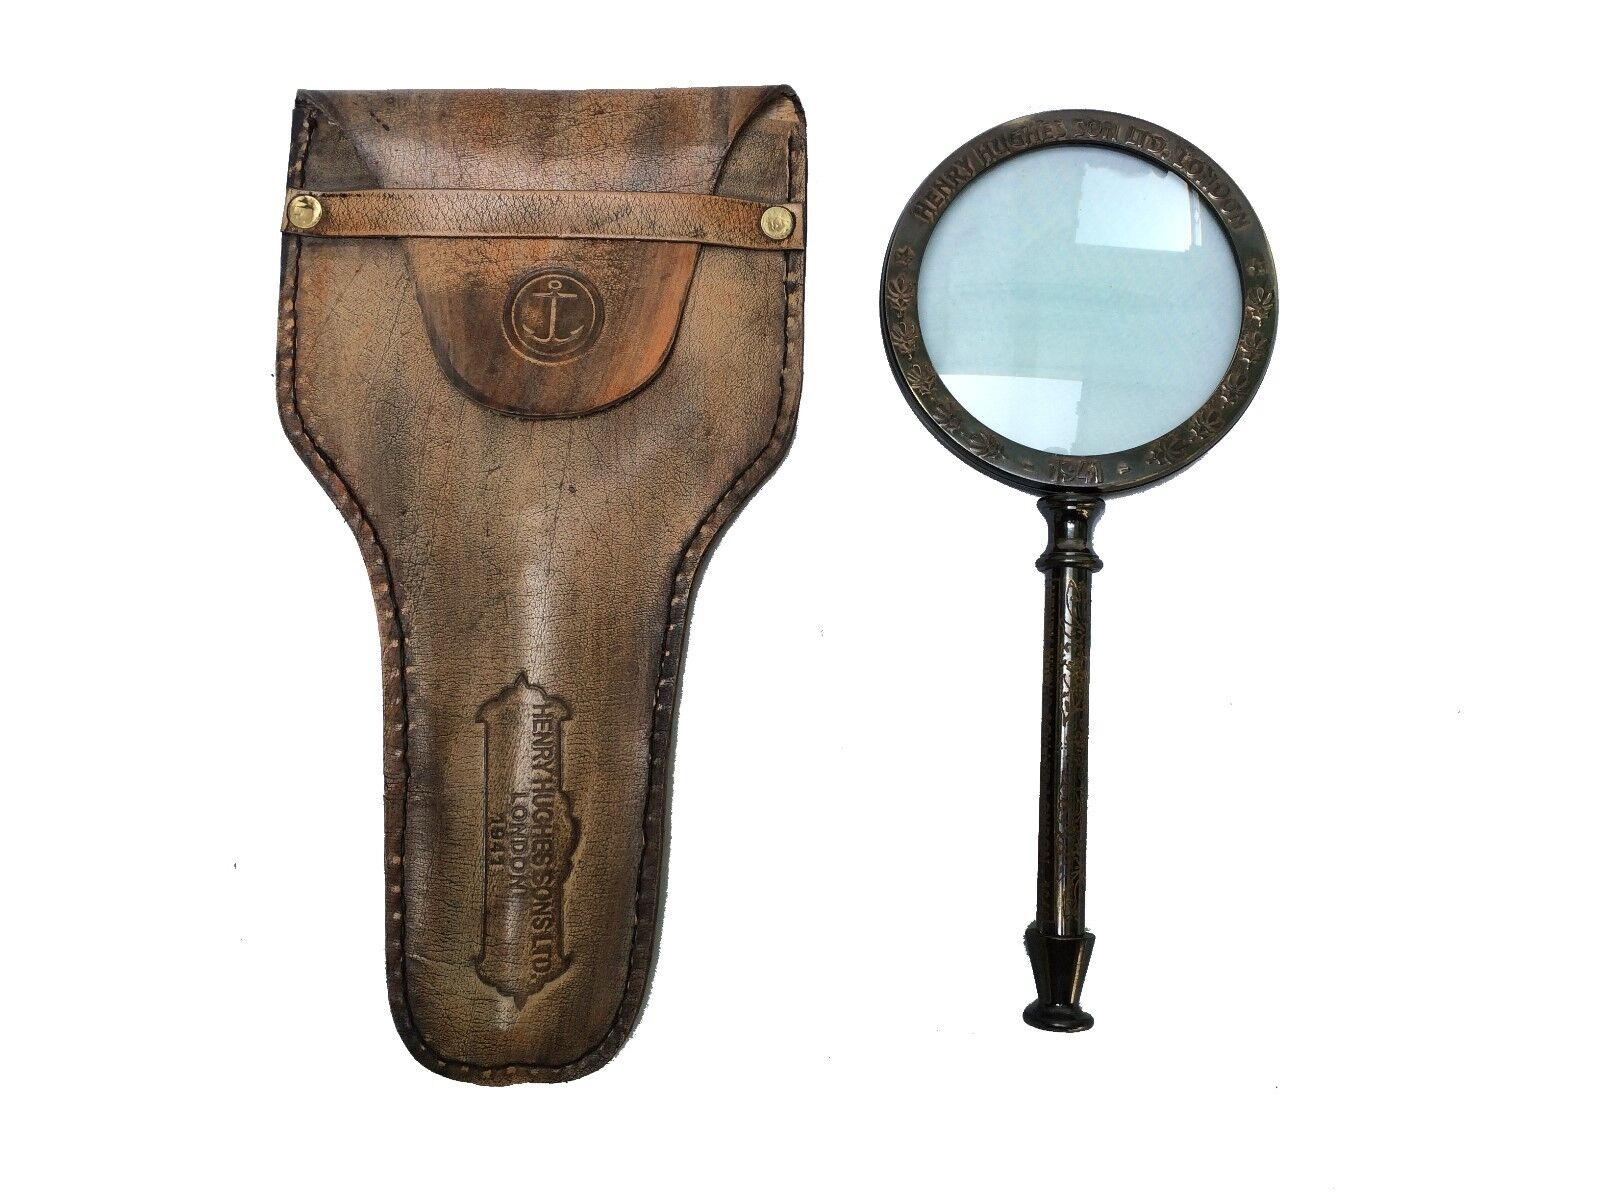 Antique Brass Magnifier Magnifying Glass Collectible